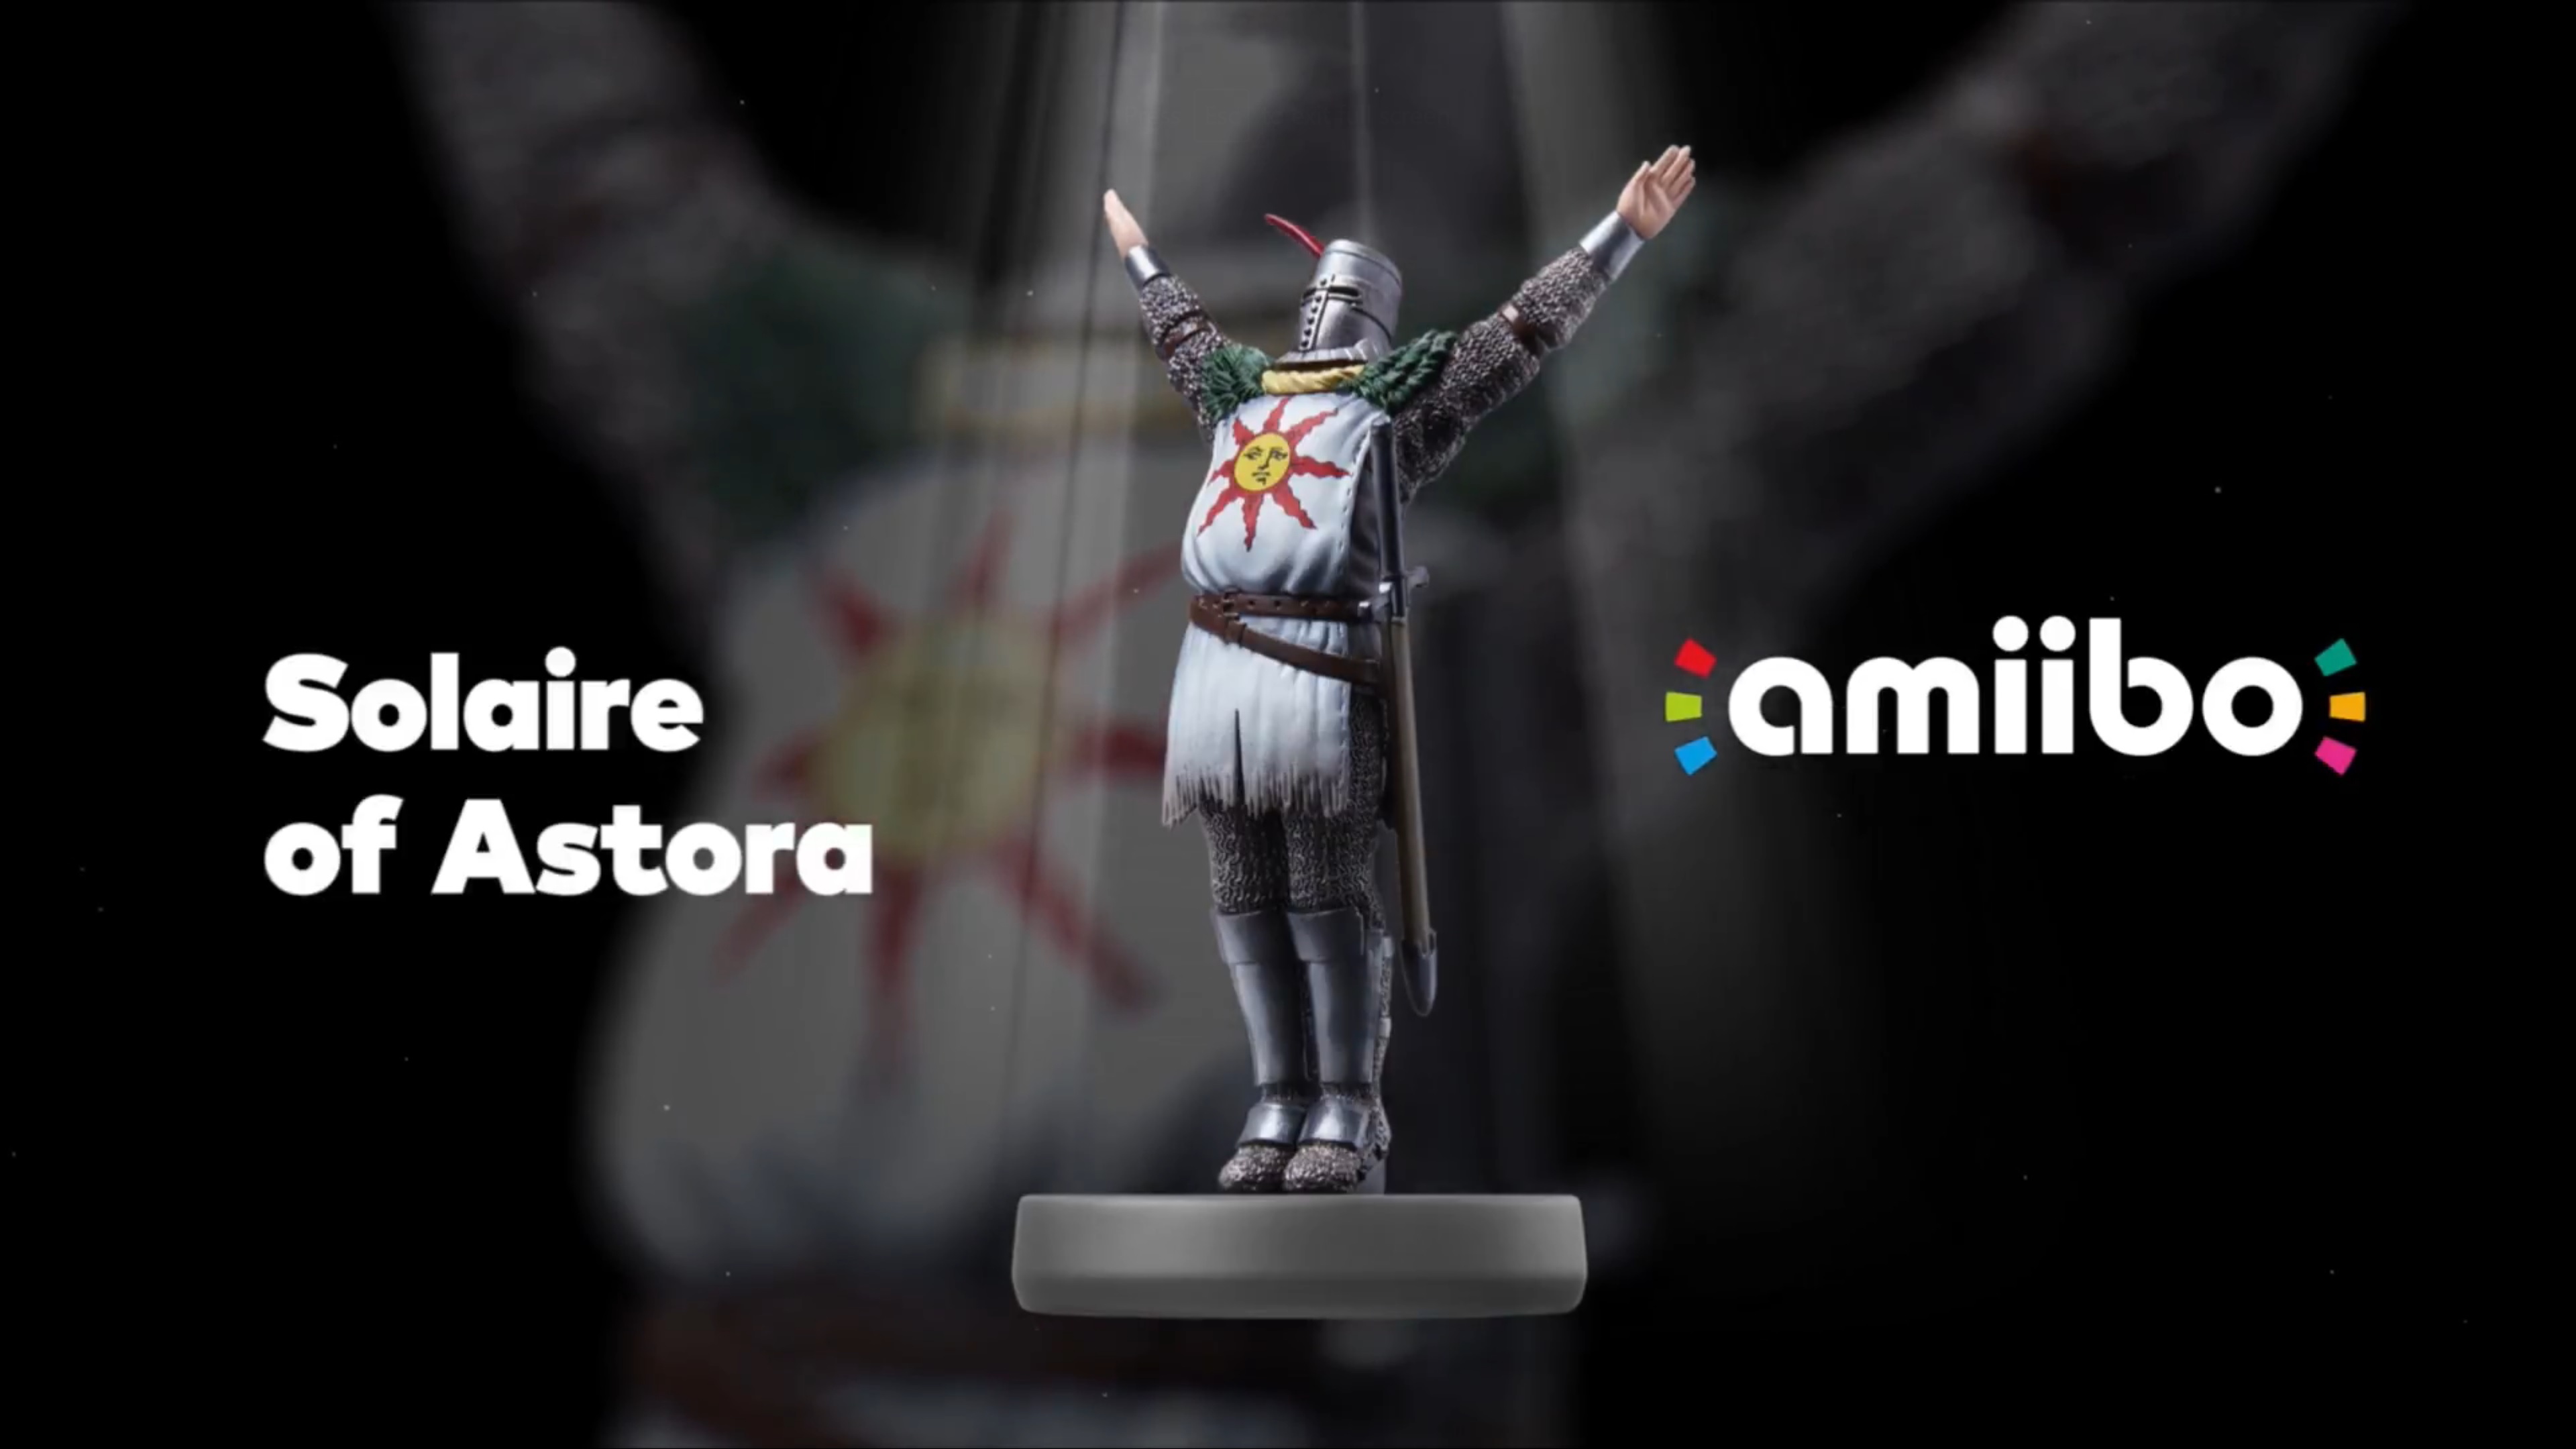 Dark Souls gets its own Amiibo